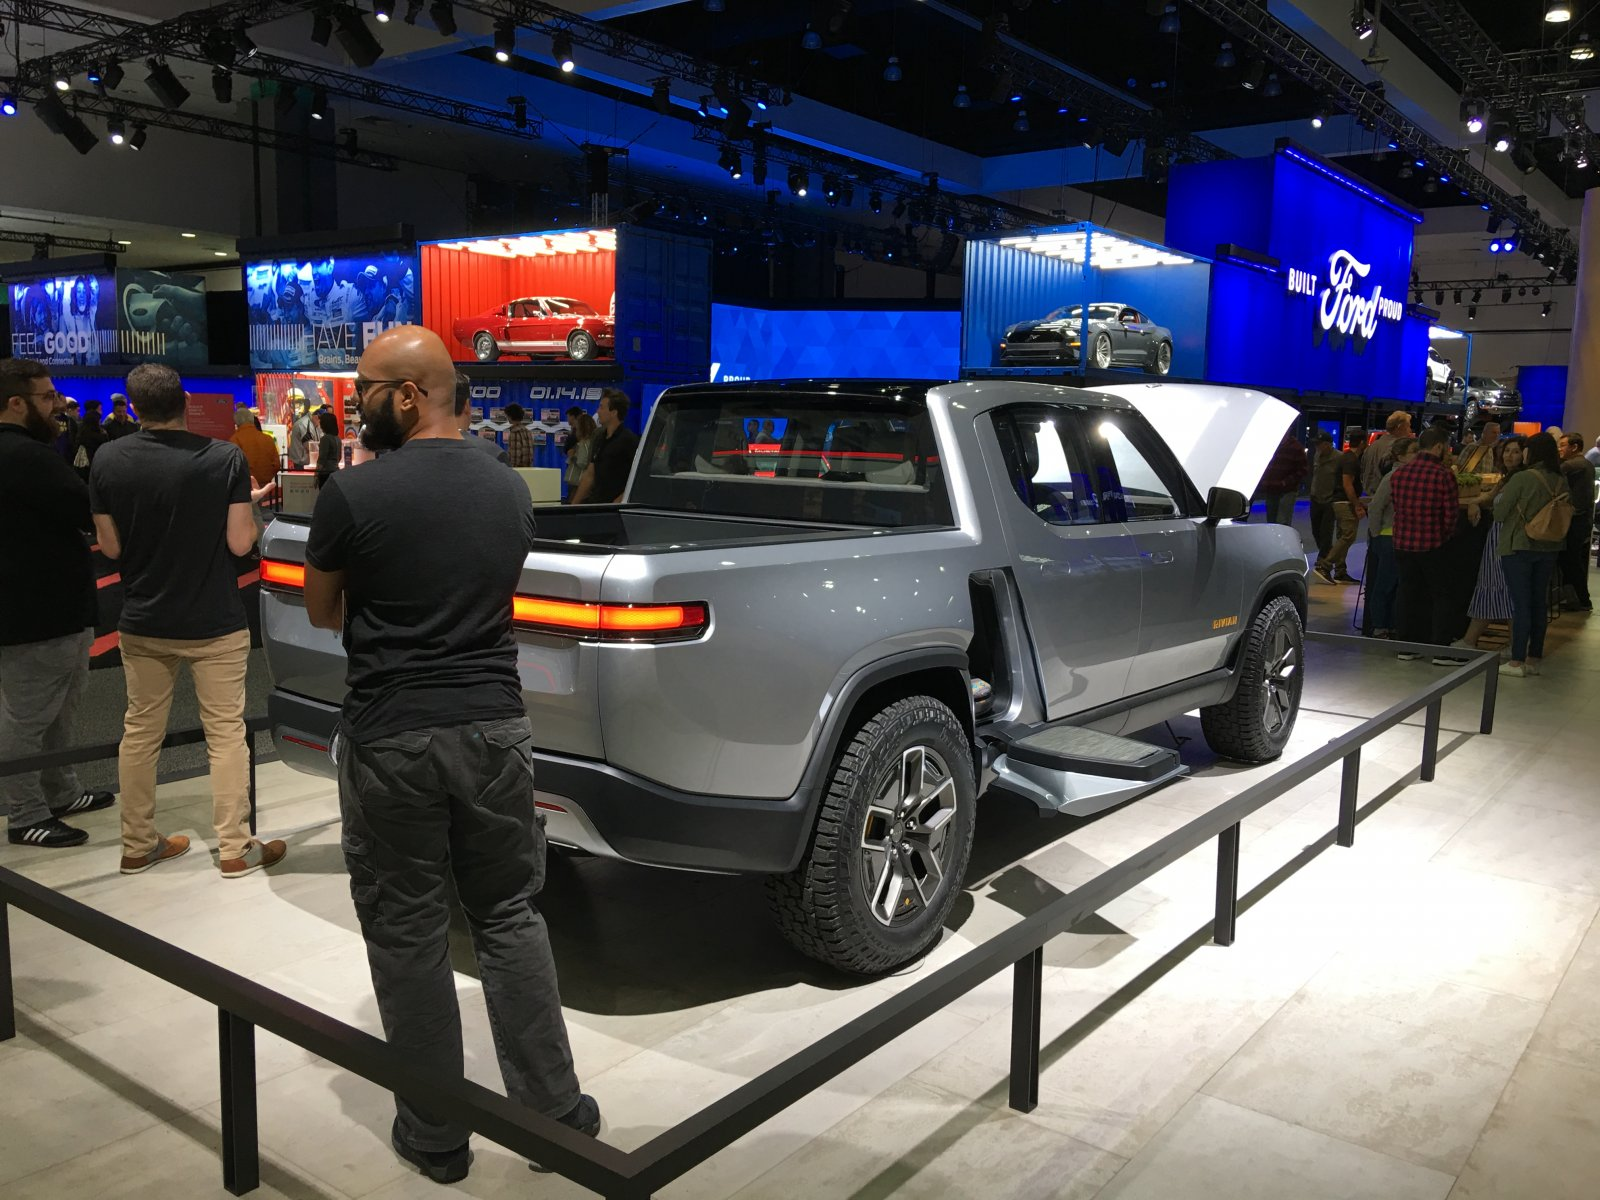 Click image for larger version  Name:Rivian Truck.jpg Views:46 Size:310.6 KB ID:329306